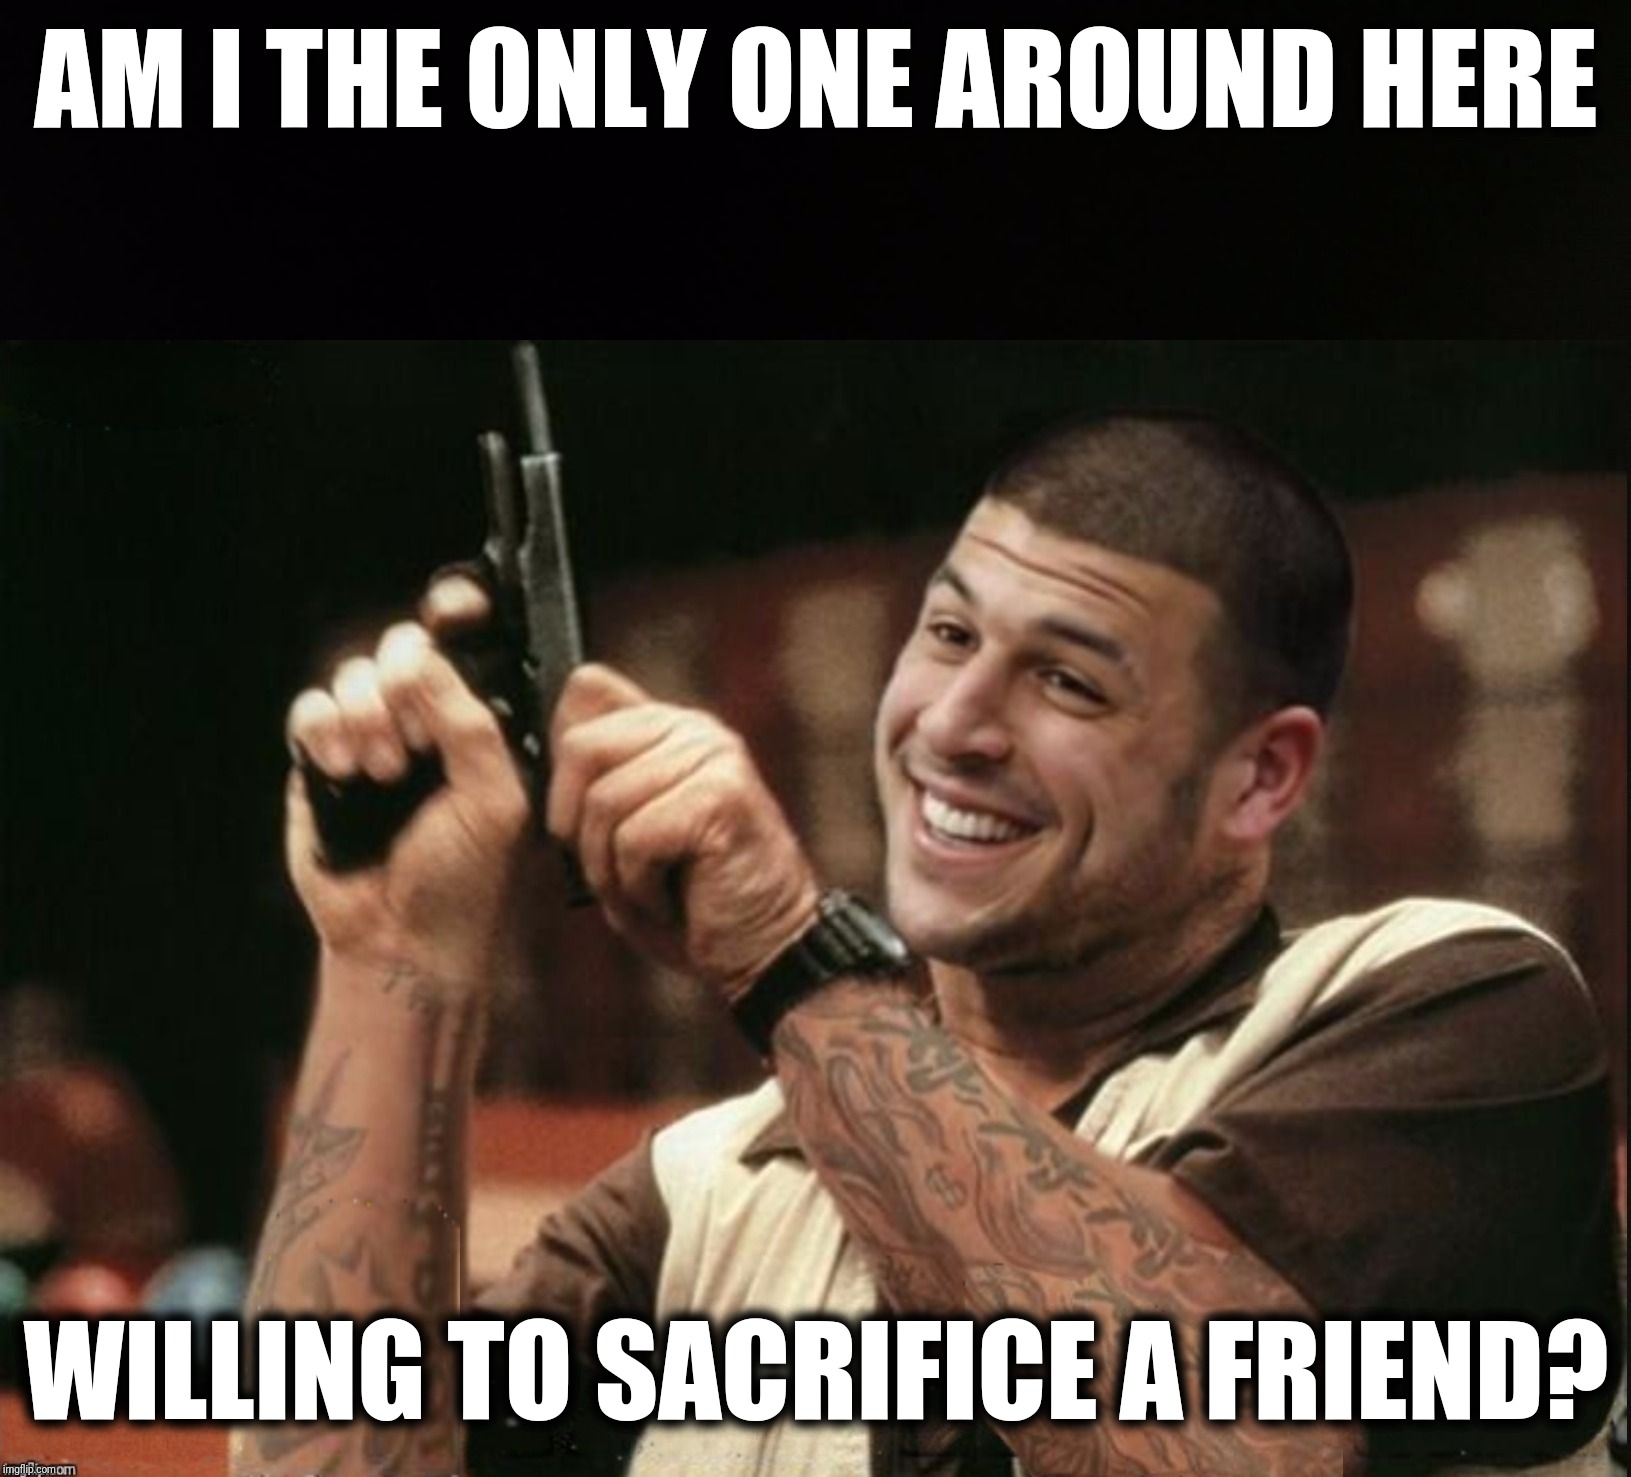 Am I The Only One Around Here Aaron Hernandez | AM I THE ONLY ONE AROUND HERE WILLING TO SACRIFICE A FRIEND? | image tagged in am i the only one around here aaron hernandez | made w/ Imgflip meme maker